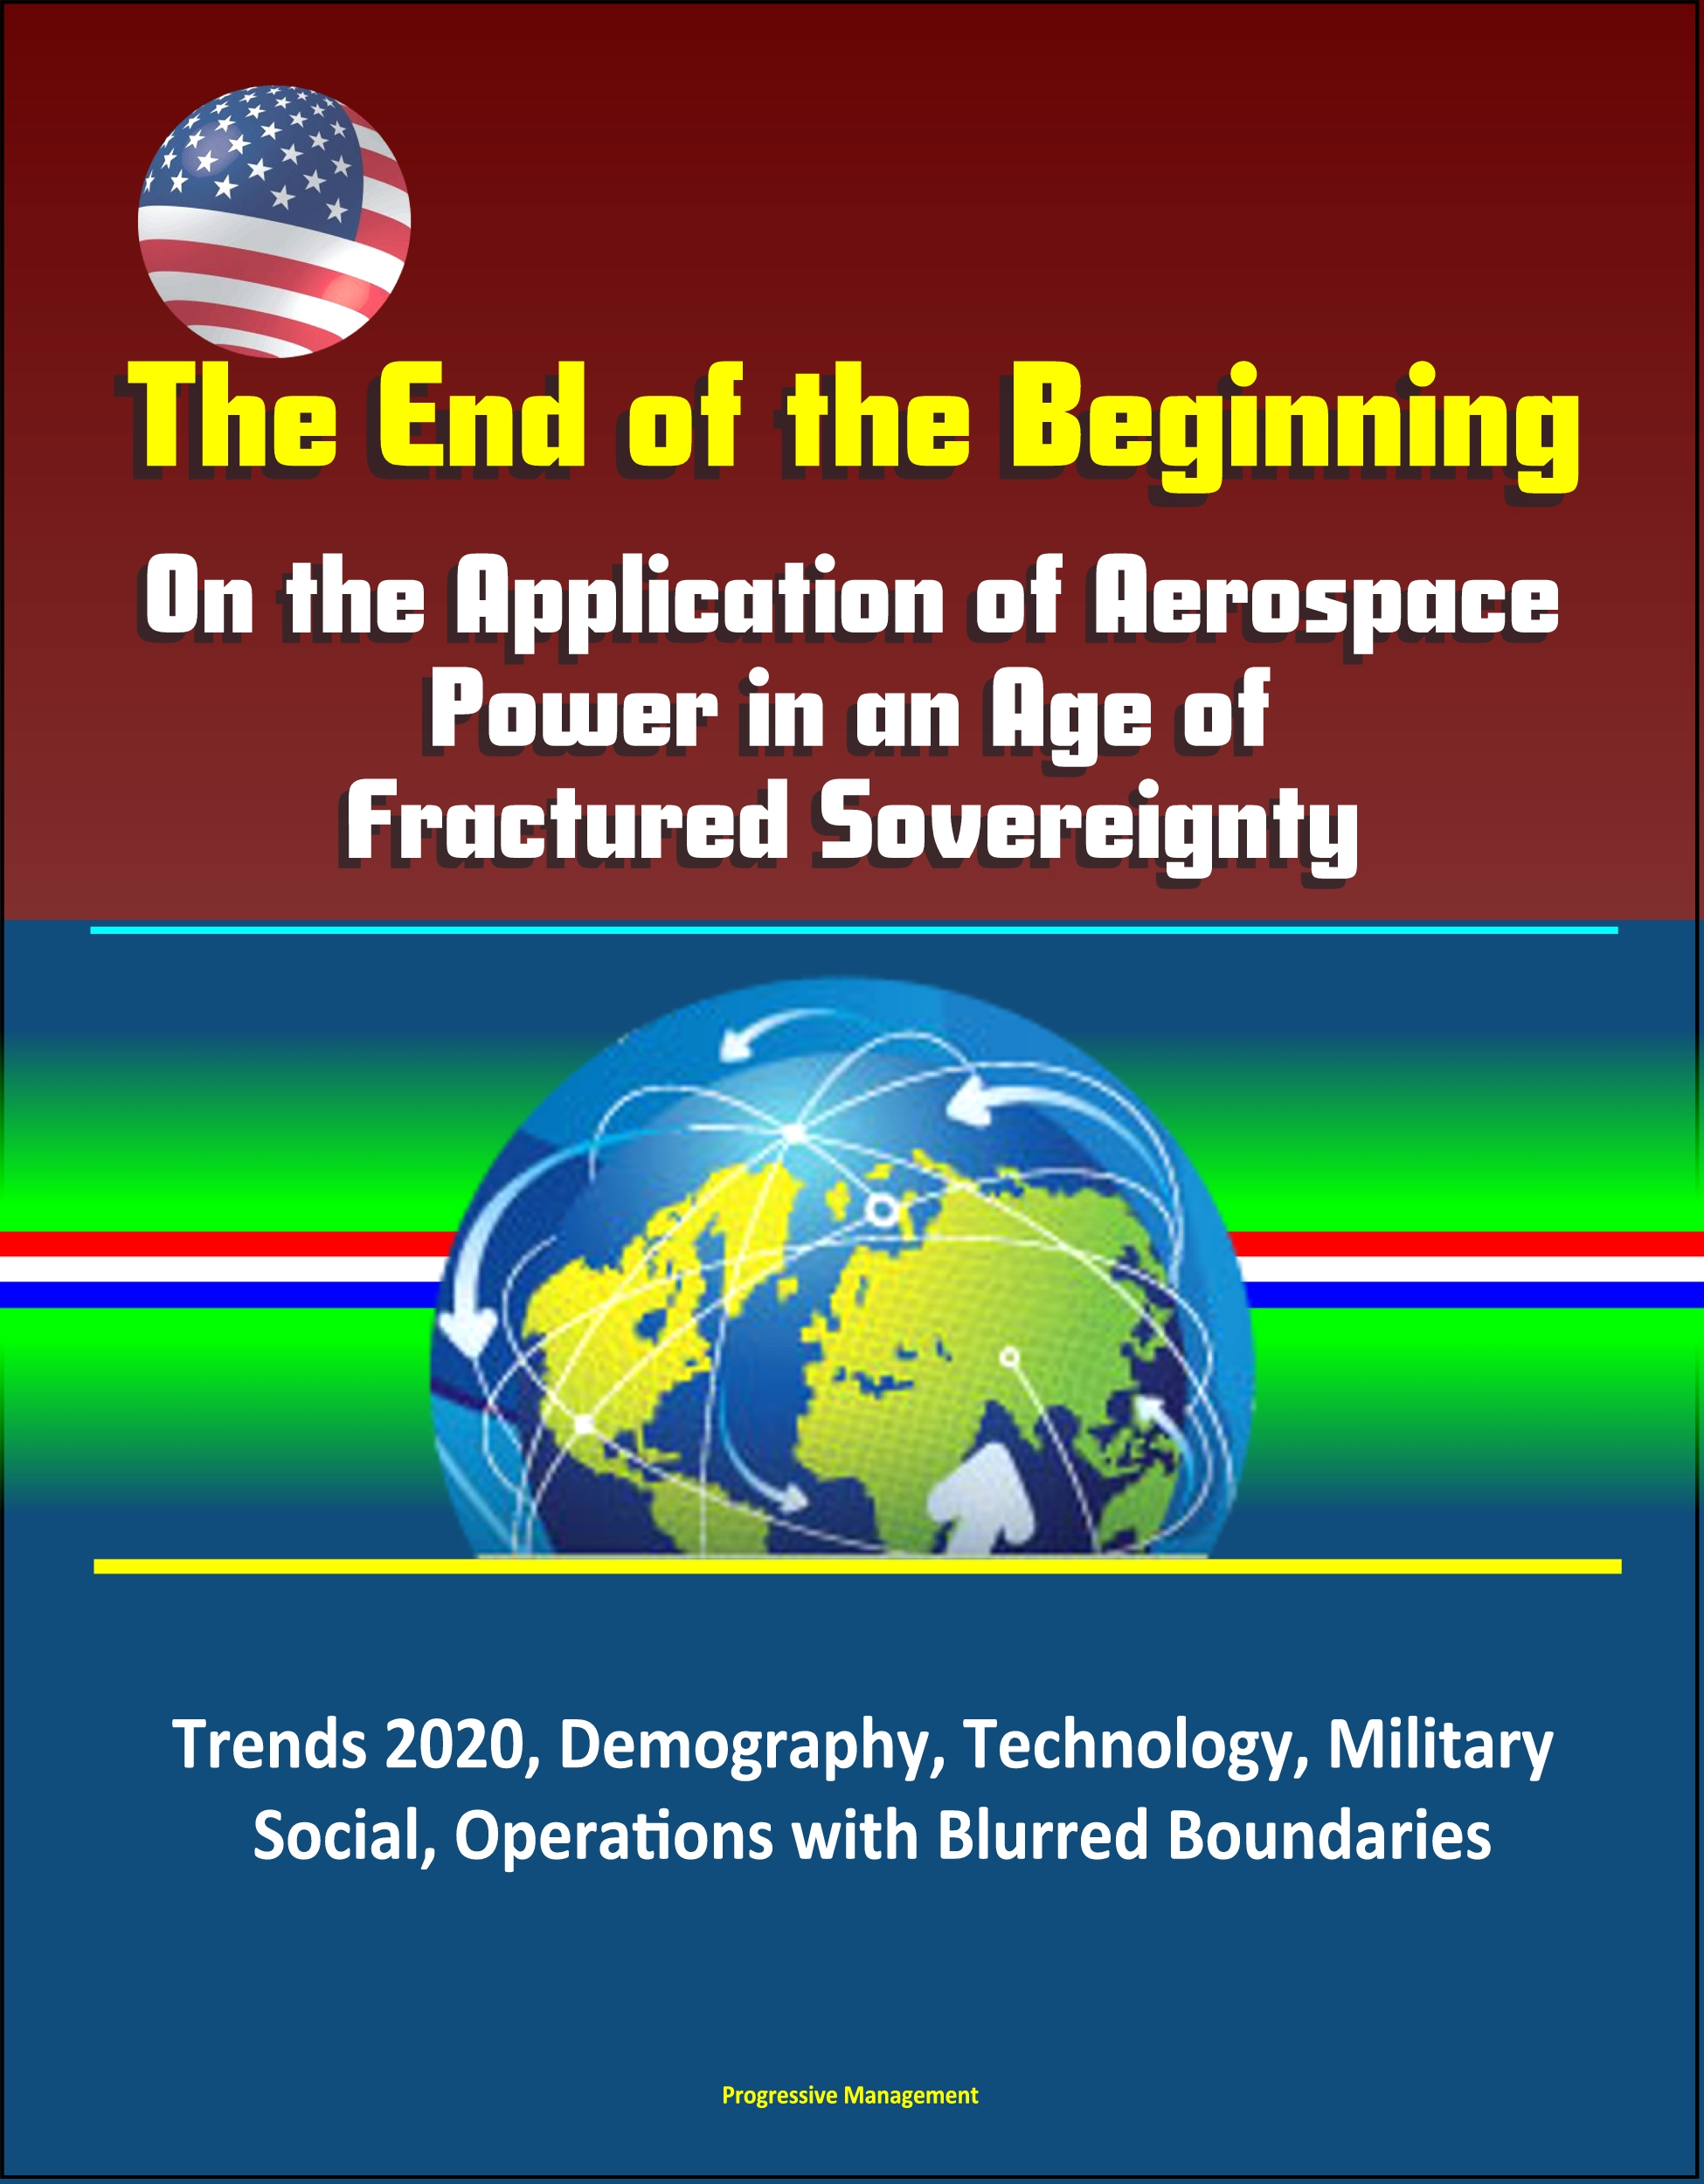 The End of the Beginning: On the Application of Aerospace Power in an Age  of Fractured Sovereignty, Trends 2020, Demography, Technology, Military,